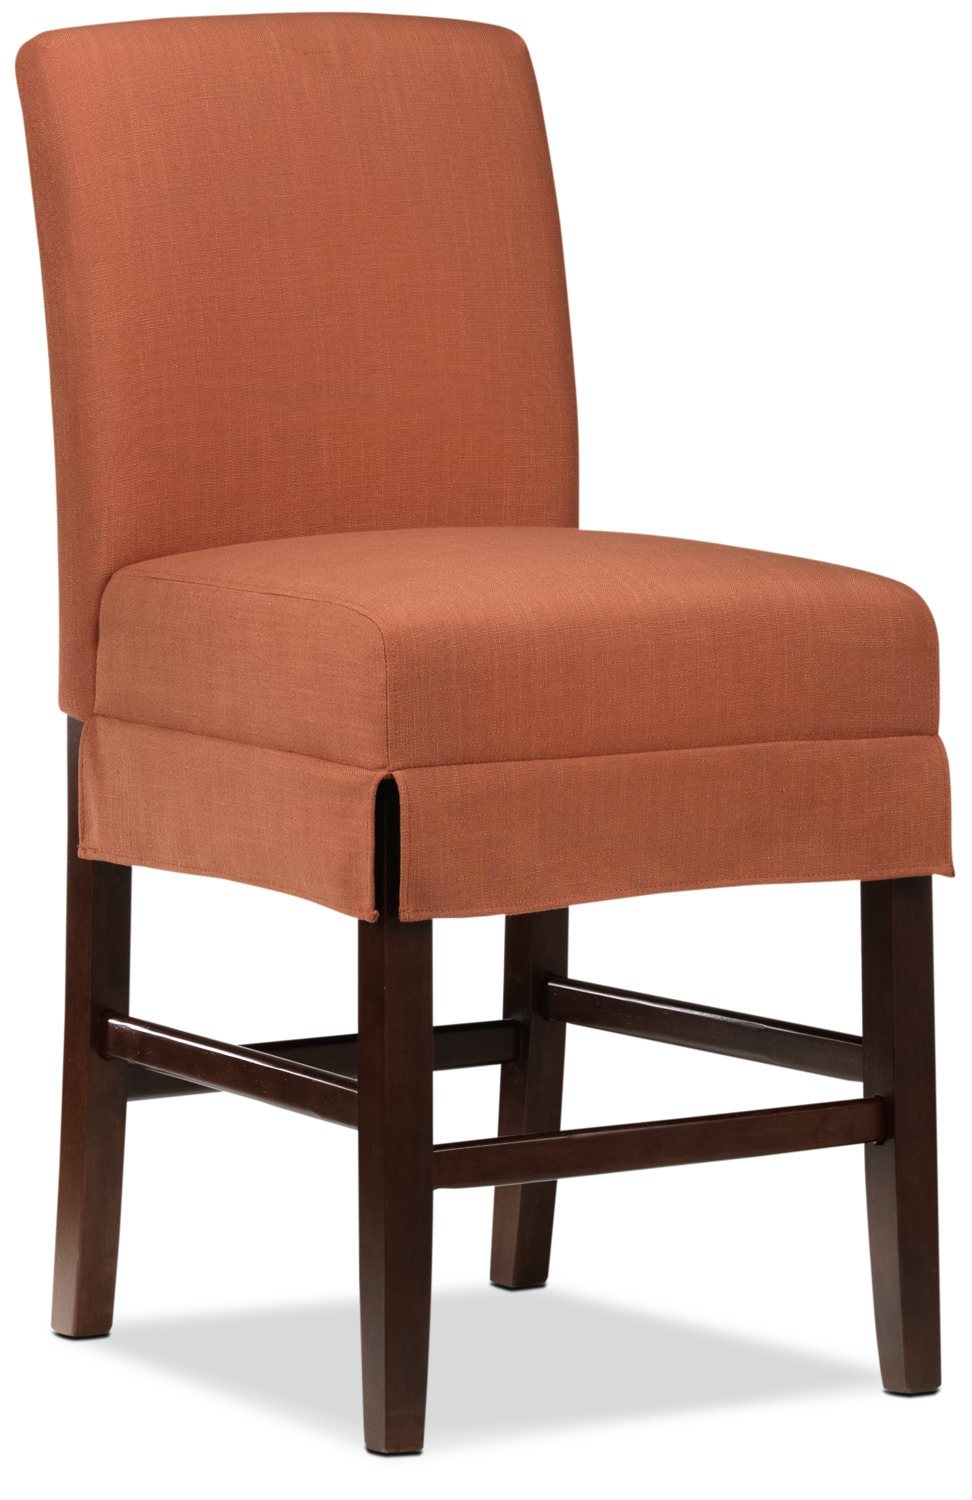 Bennett Pub Chair - Orange